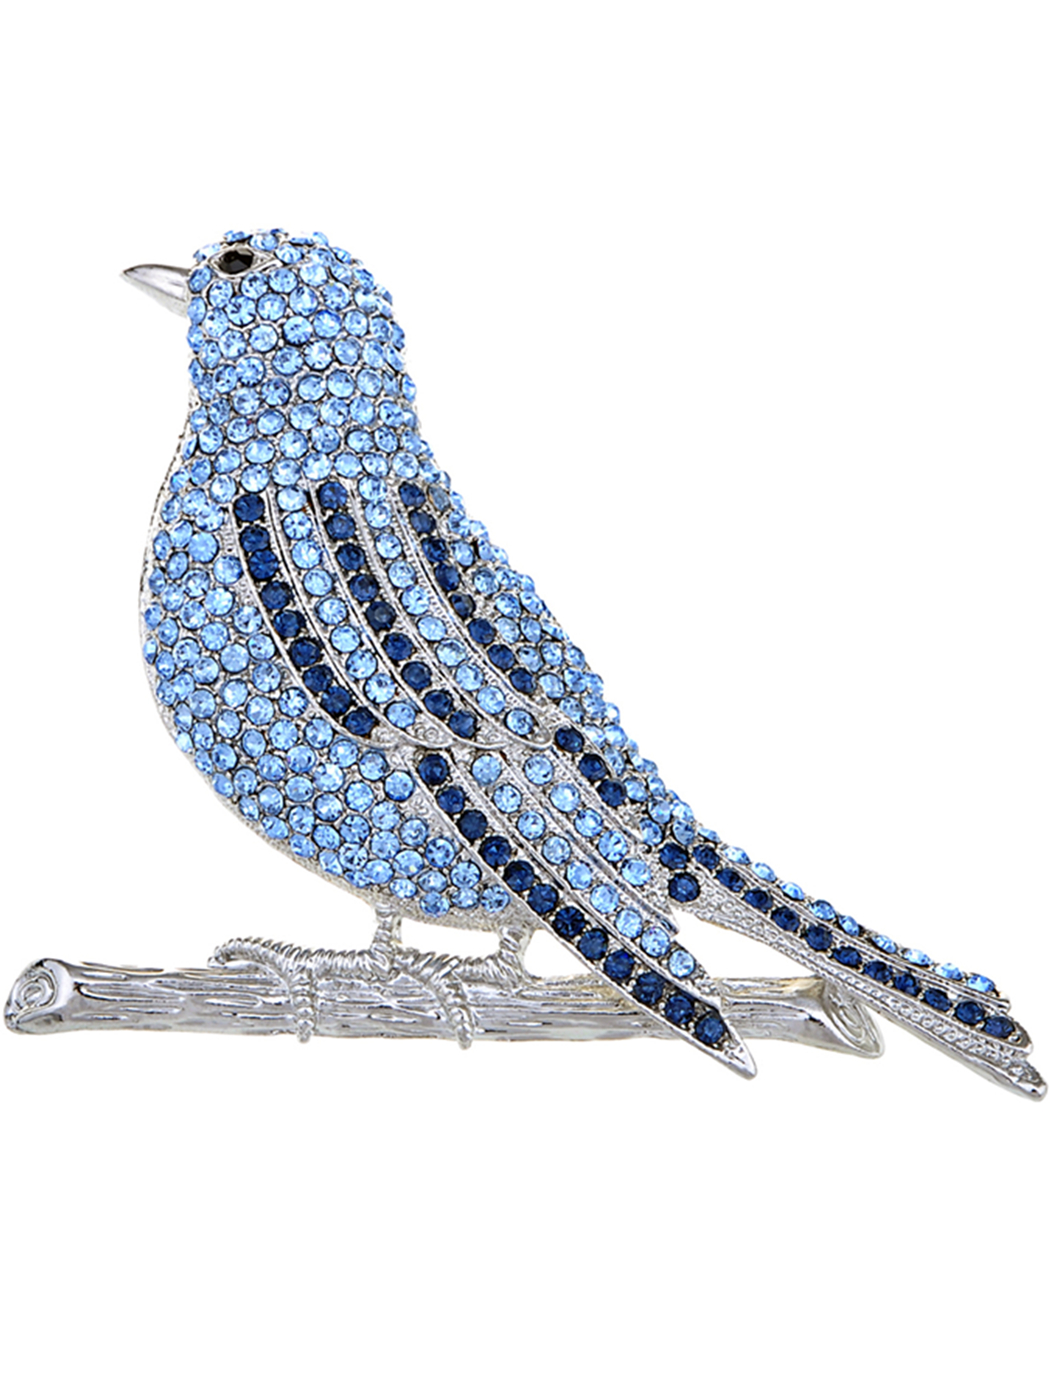 Hand Crafted Silver Tone Blue Bird Fly Sapphire Crystal Rhinestone Pin Brooch by